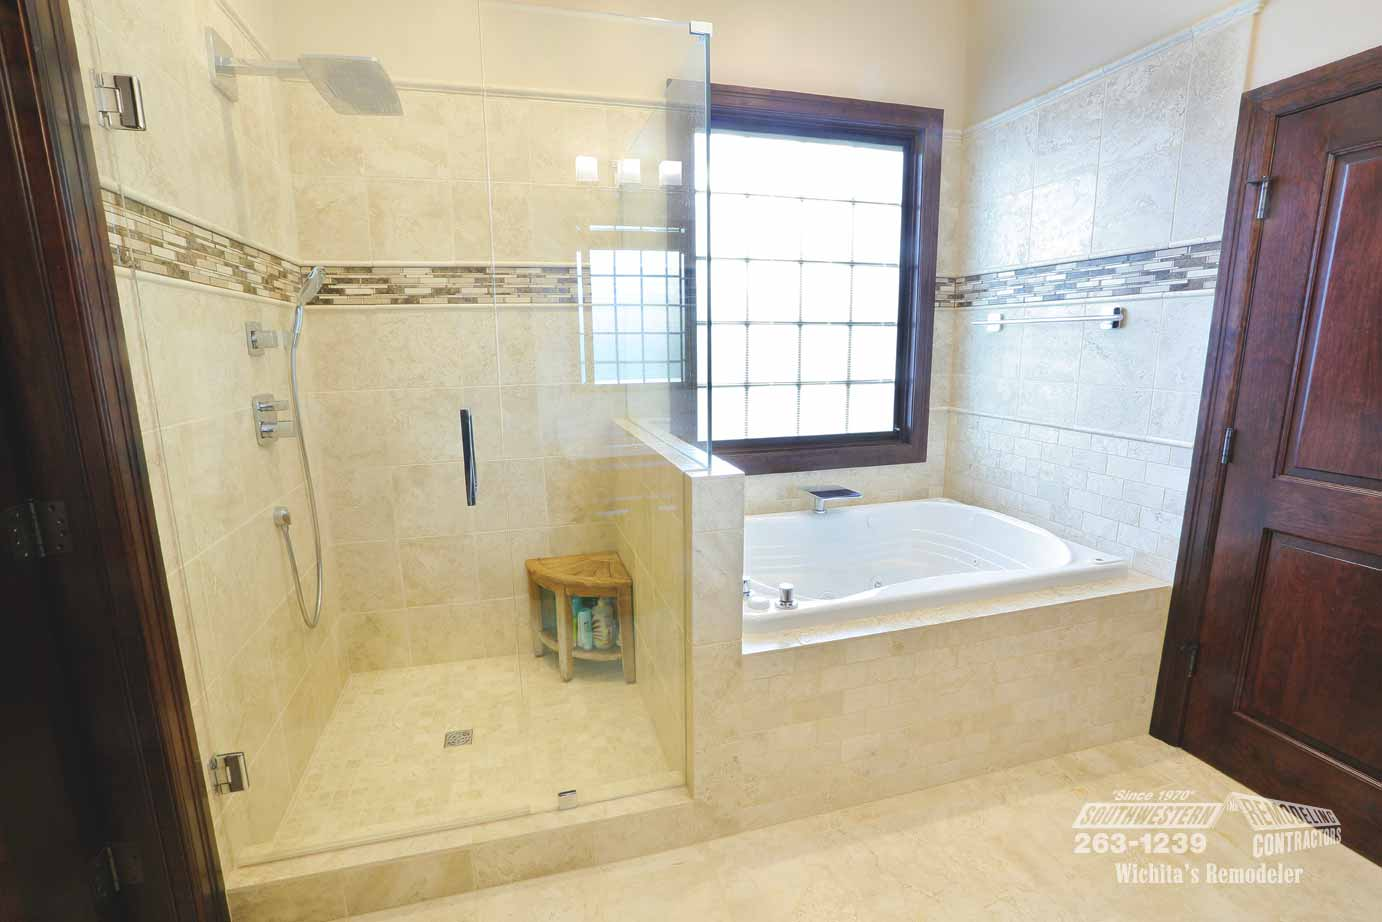 Bathroom remodeling southwestern remodeling wichita for Bathroom remodel 85382